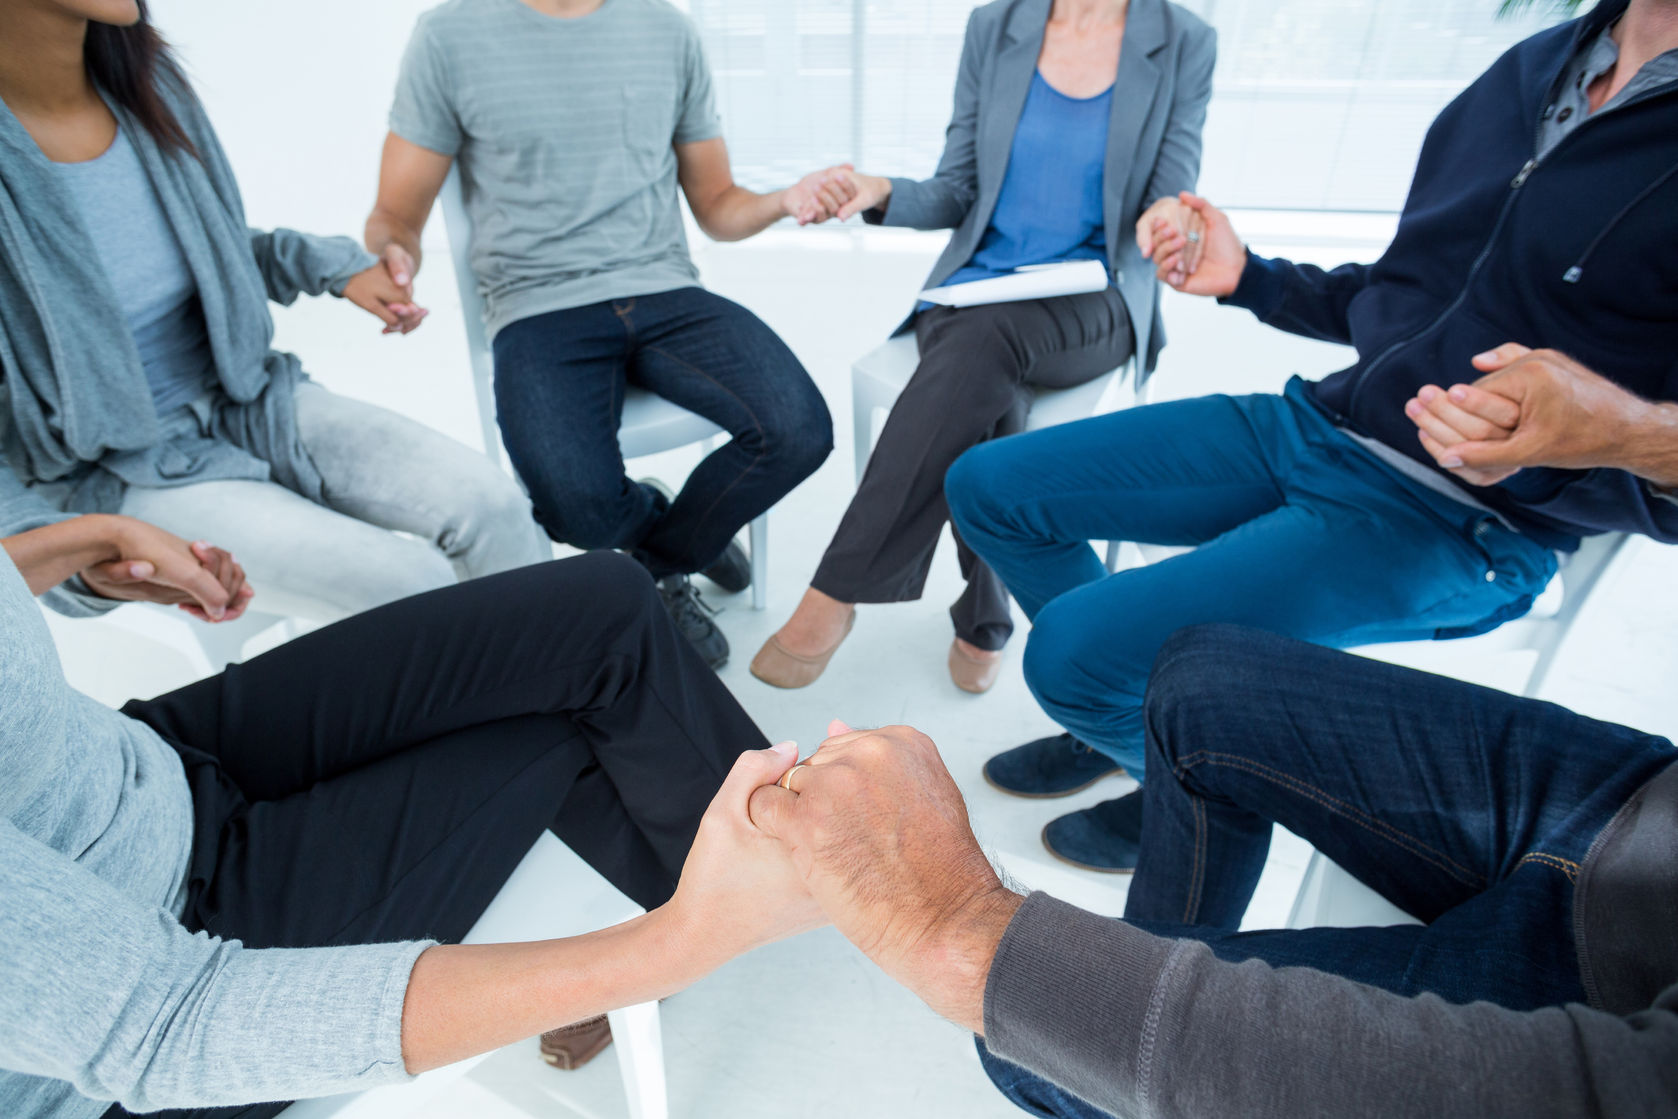 support group in a circle